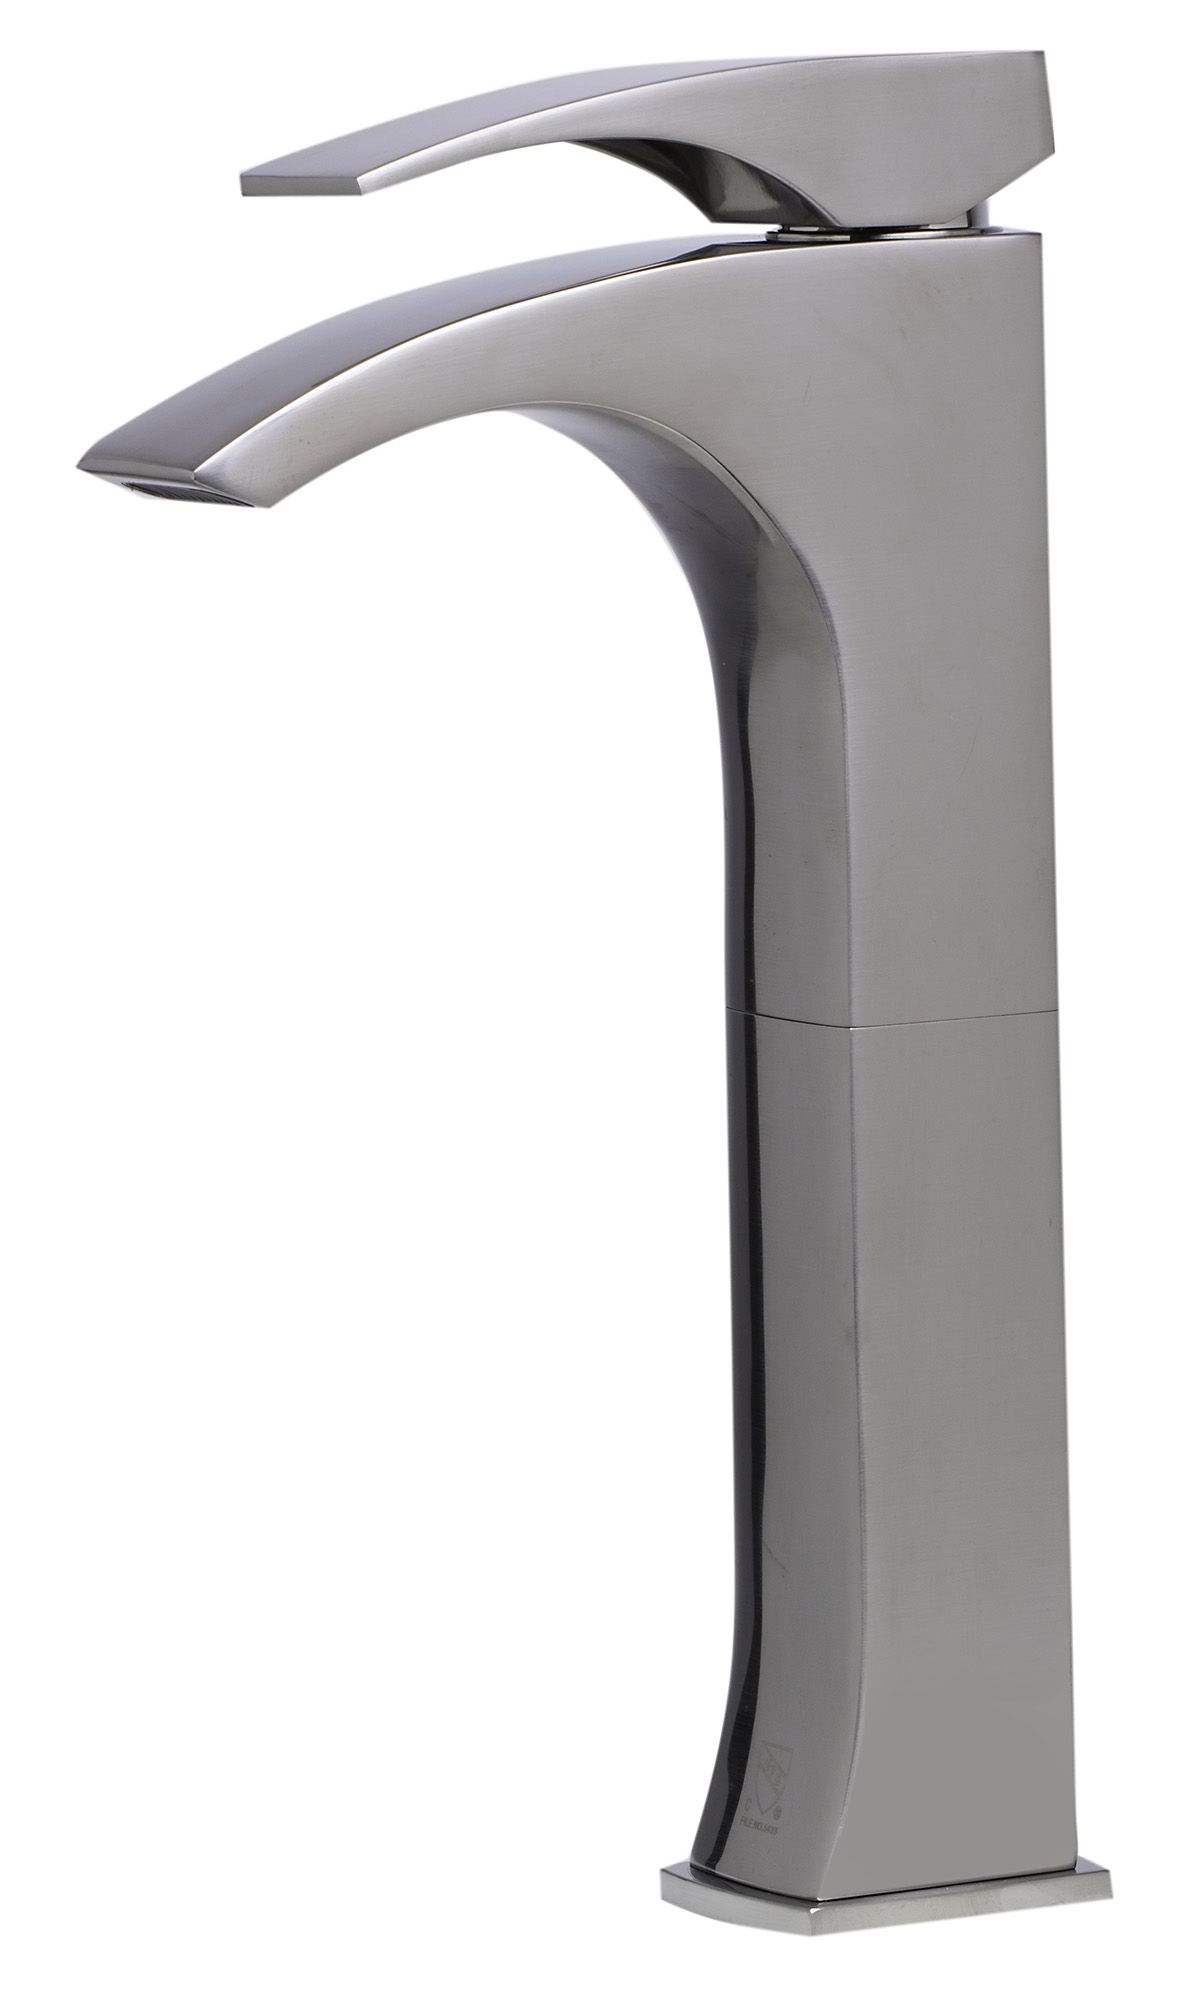 ALFI Brand AB1587 Tall Brushed Nickel or Polished Chrome Single Lever Bathroom Faucet